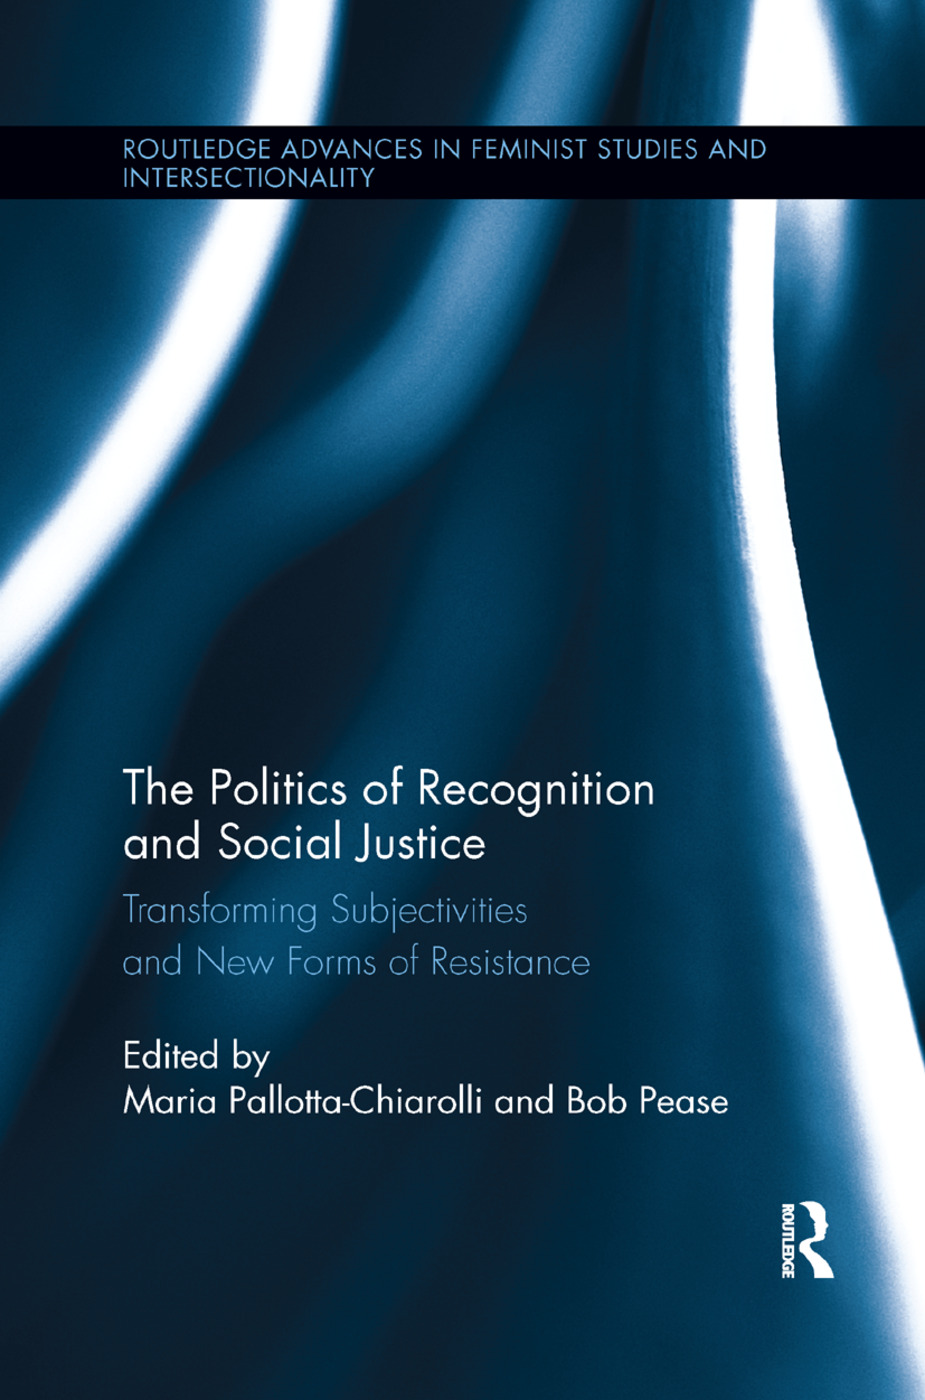 The Politics of Recognition and Social Justice: Transforming Subjectivities and New Forms of Resistance book cover